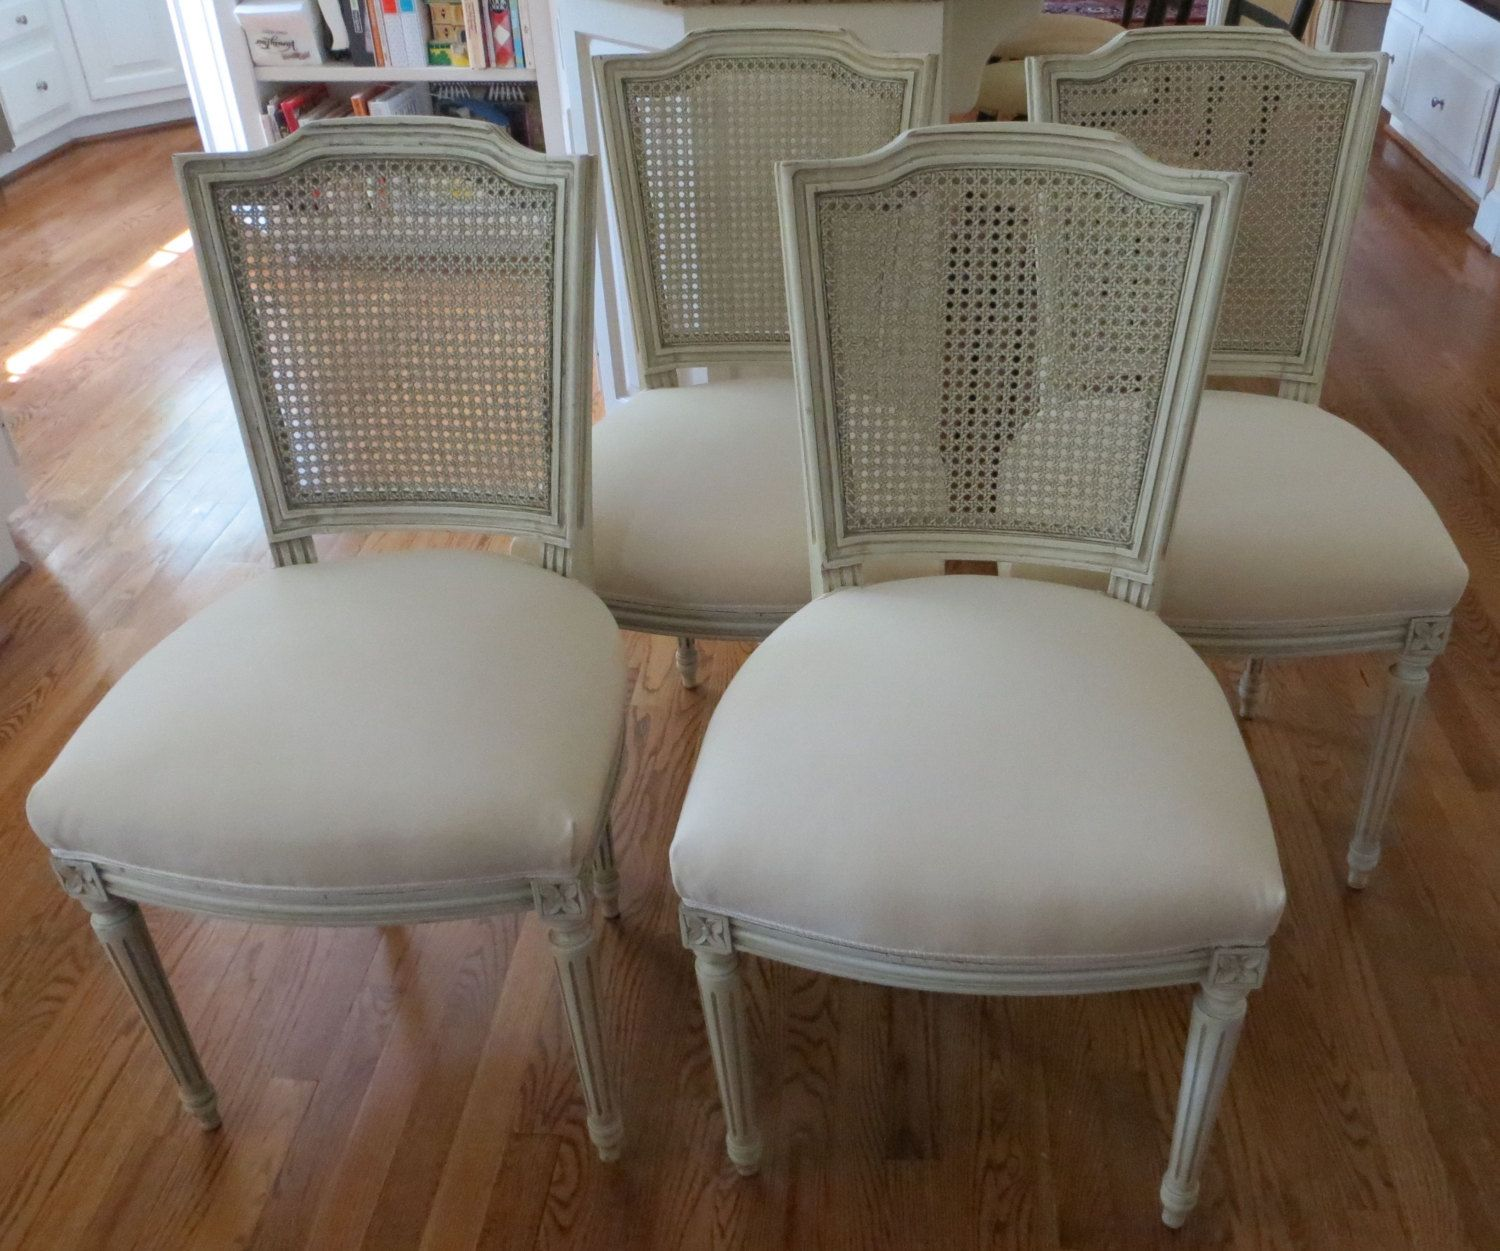 Louis cane back dining chair set of 2 ballard designs - Four Italian Antique Caned Back Dining Chairs Totally Refurbished By Wydevendesigns On Etsy